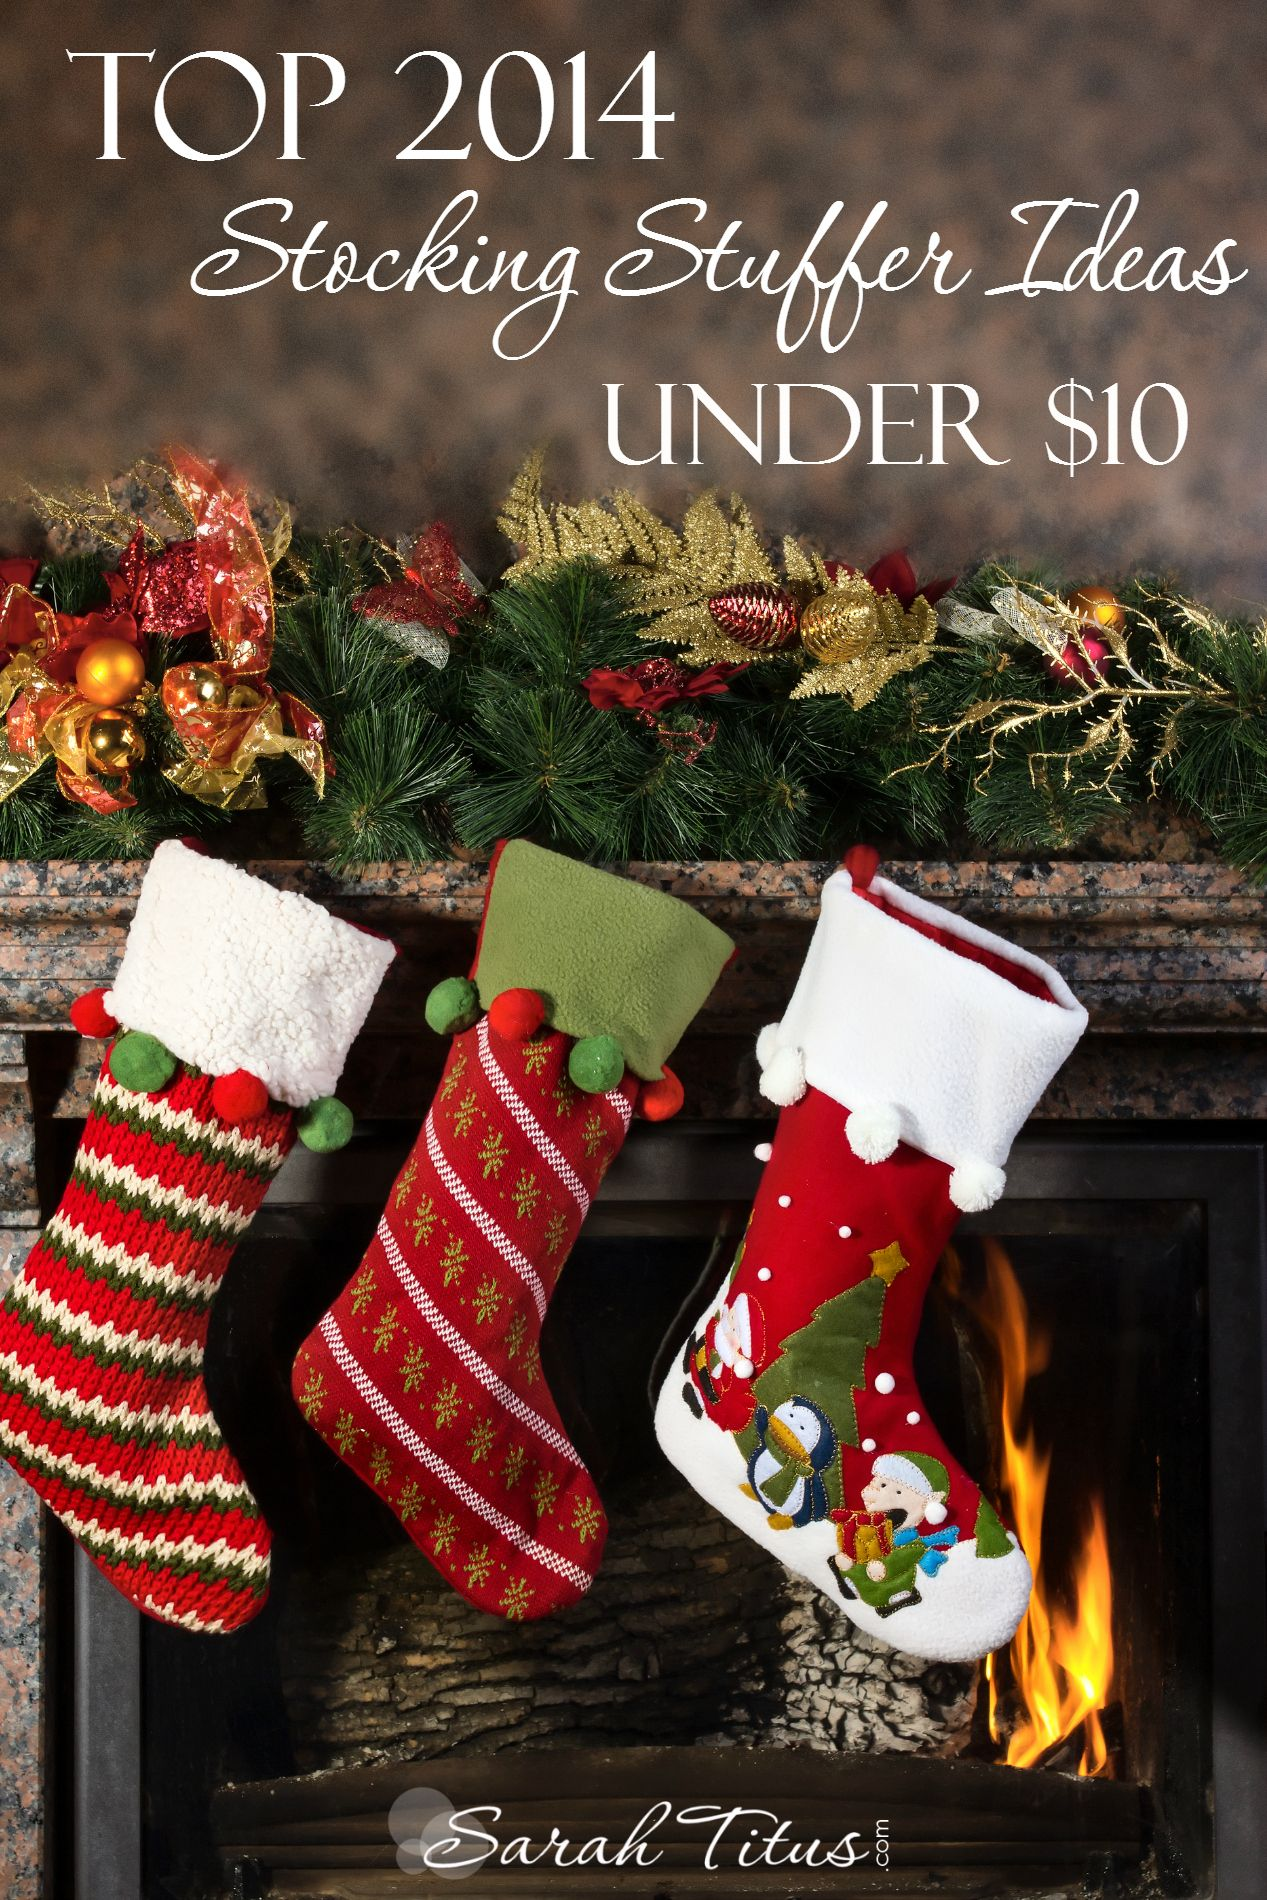 Top Stocking Stuffer Ideas Under $10 | Holidays | Pinterest